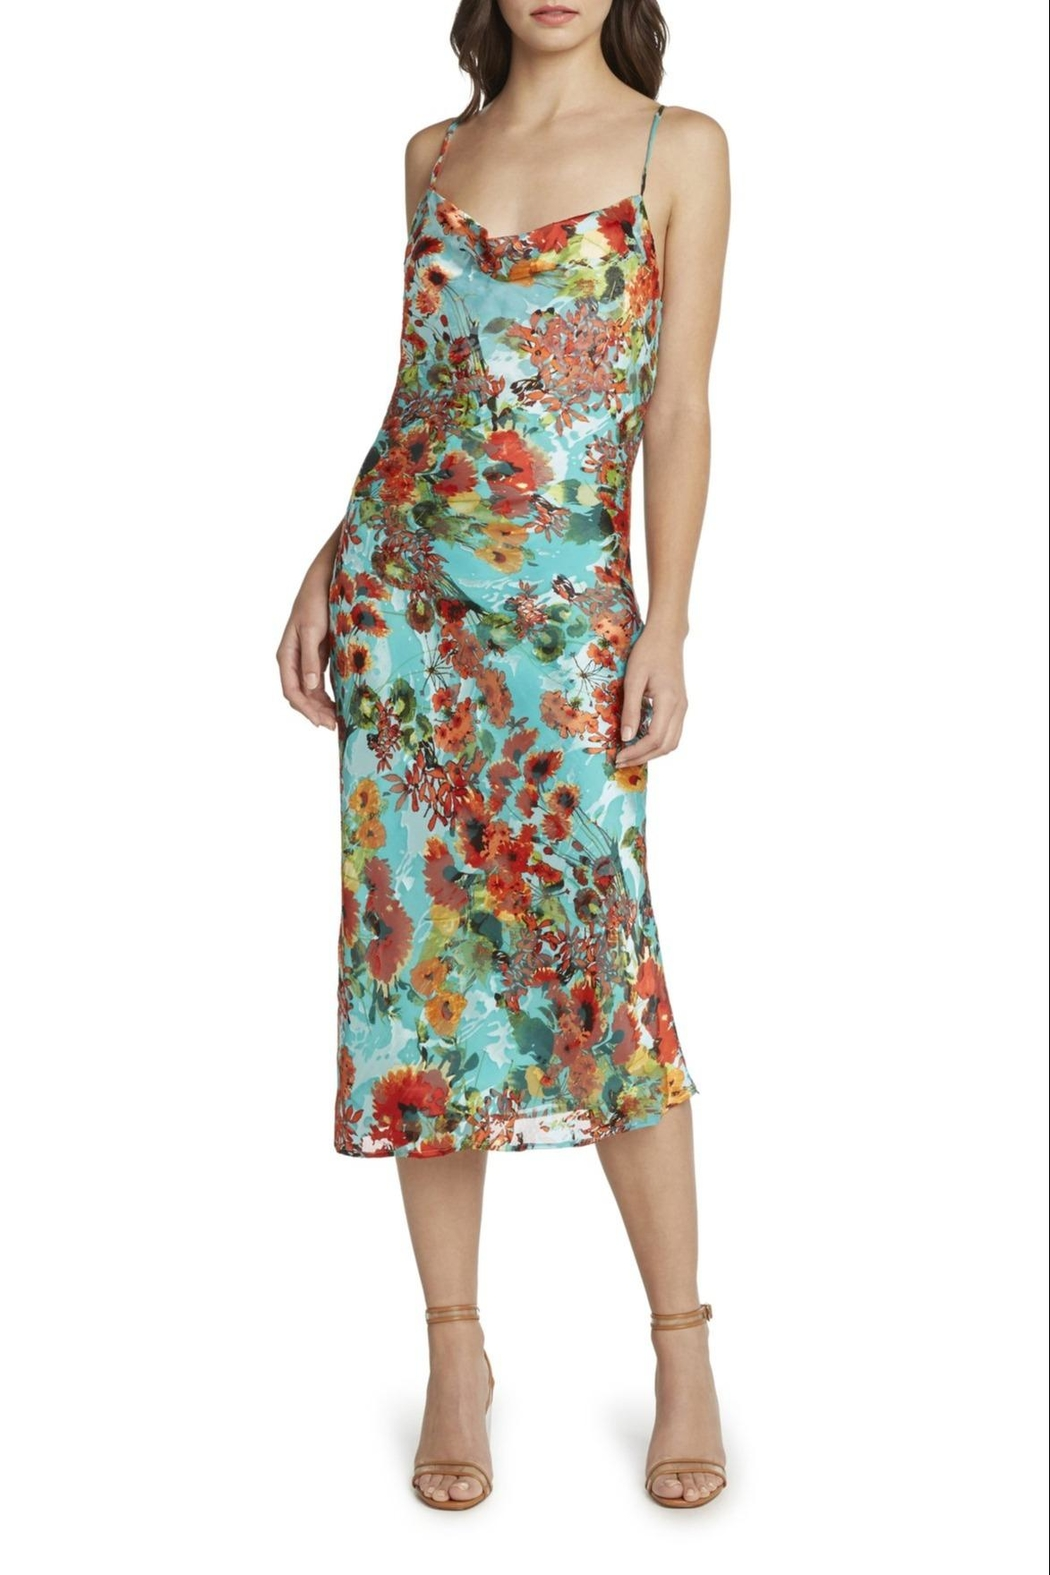 Willow & Clay Marcia Floral Dress - Front Full Image